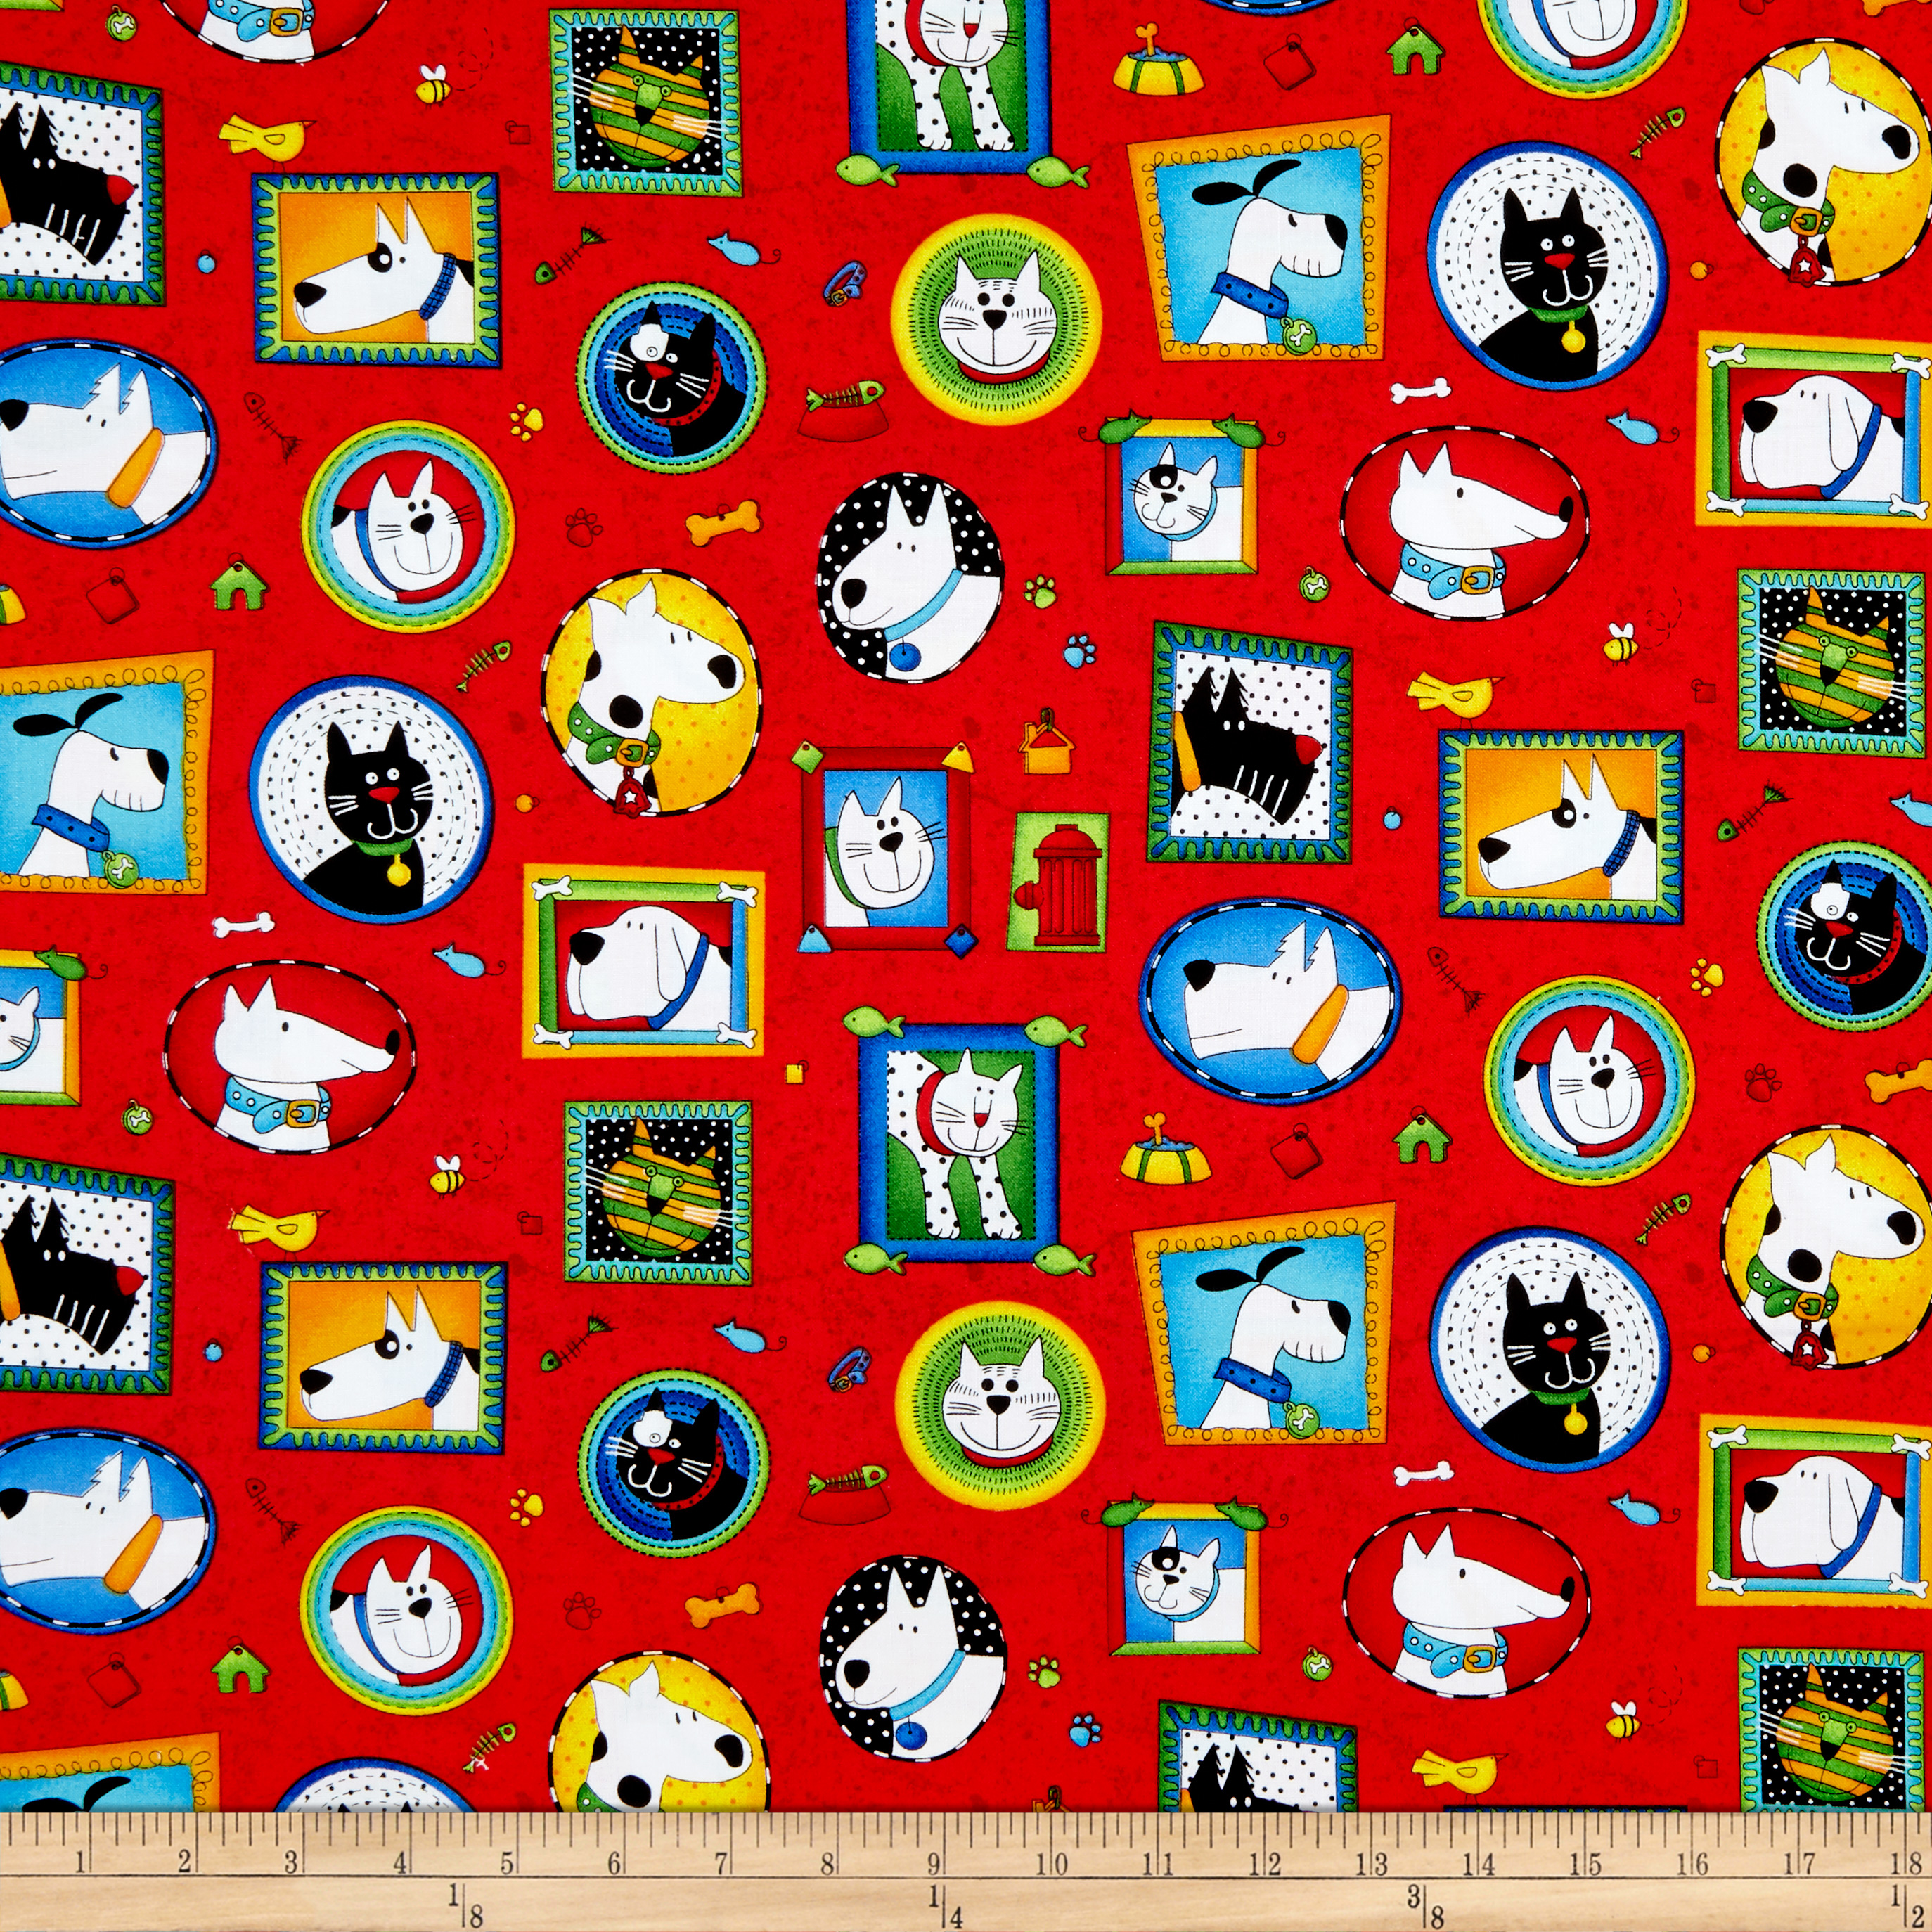 INOpets.com Anything for Pets Parents & Their Pets Epic Woof N' Whiskers Framed Pets Red Fabric